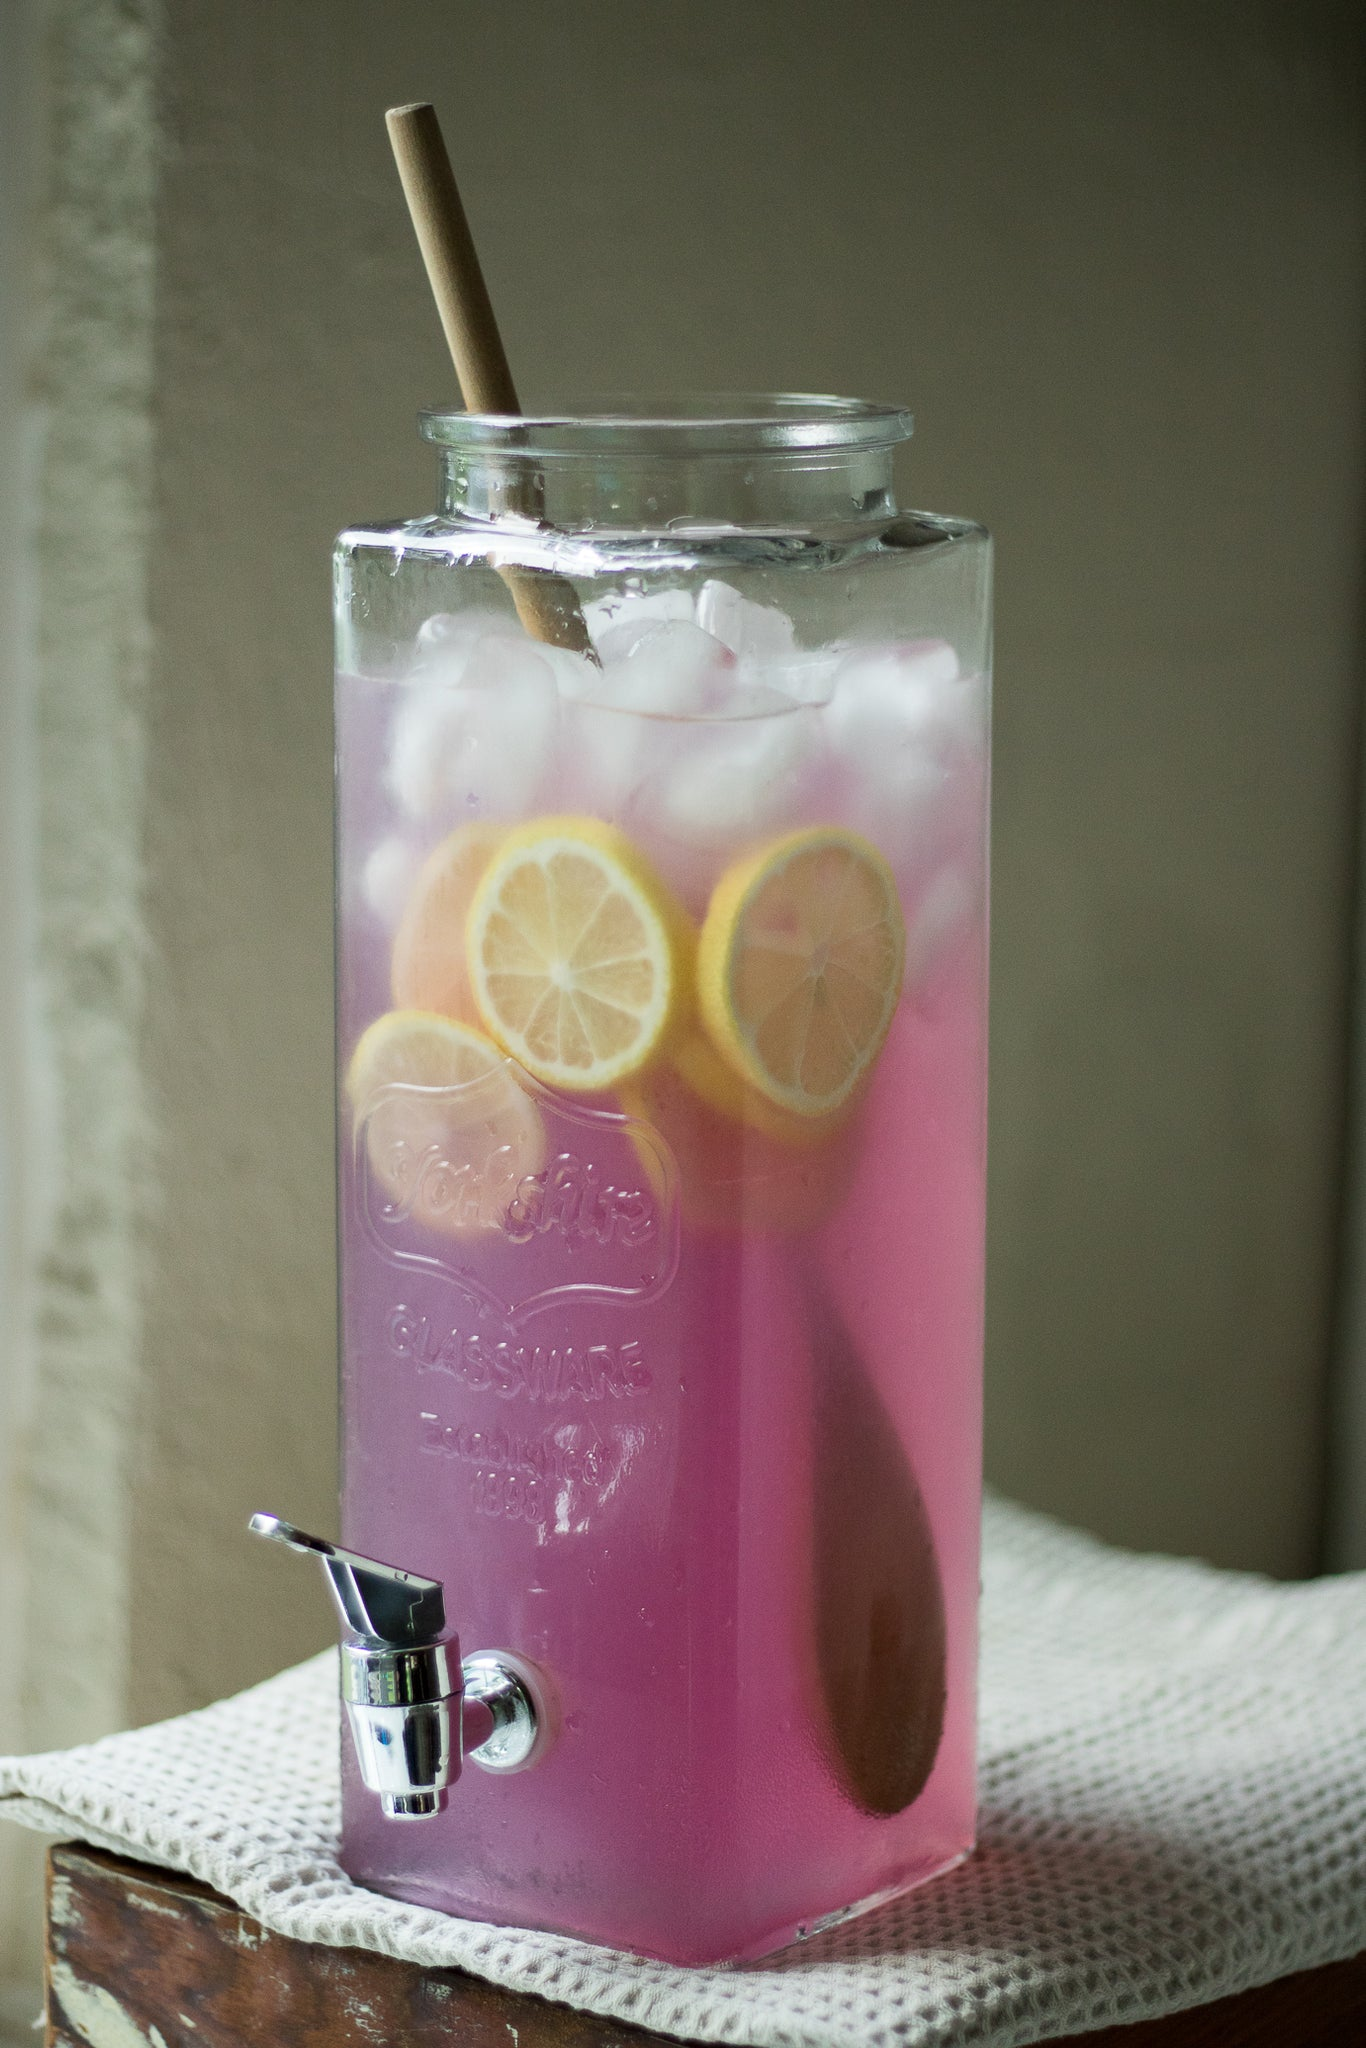 Blue Butterfly Pea Flower Lemonade Recipe in beverage dispenser